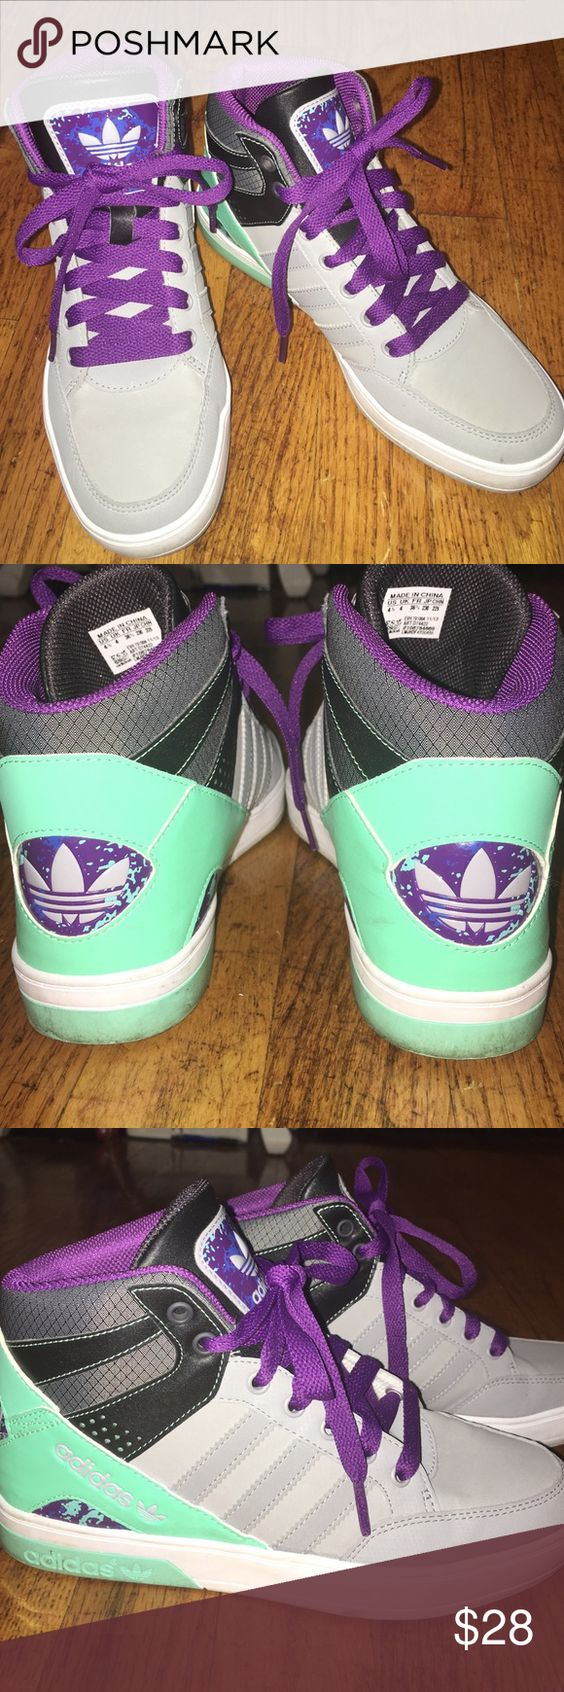 Adidas high tops Grey, purple, Aqua, and black colored high tops. In good condition. Size 4.5 kids*** fits a woman's size 6! Adidas Shoes Sneakers